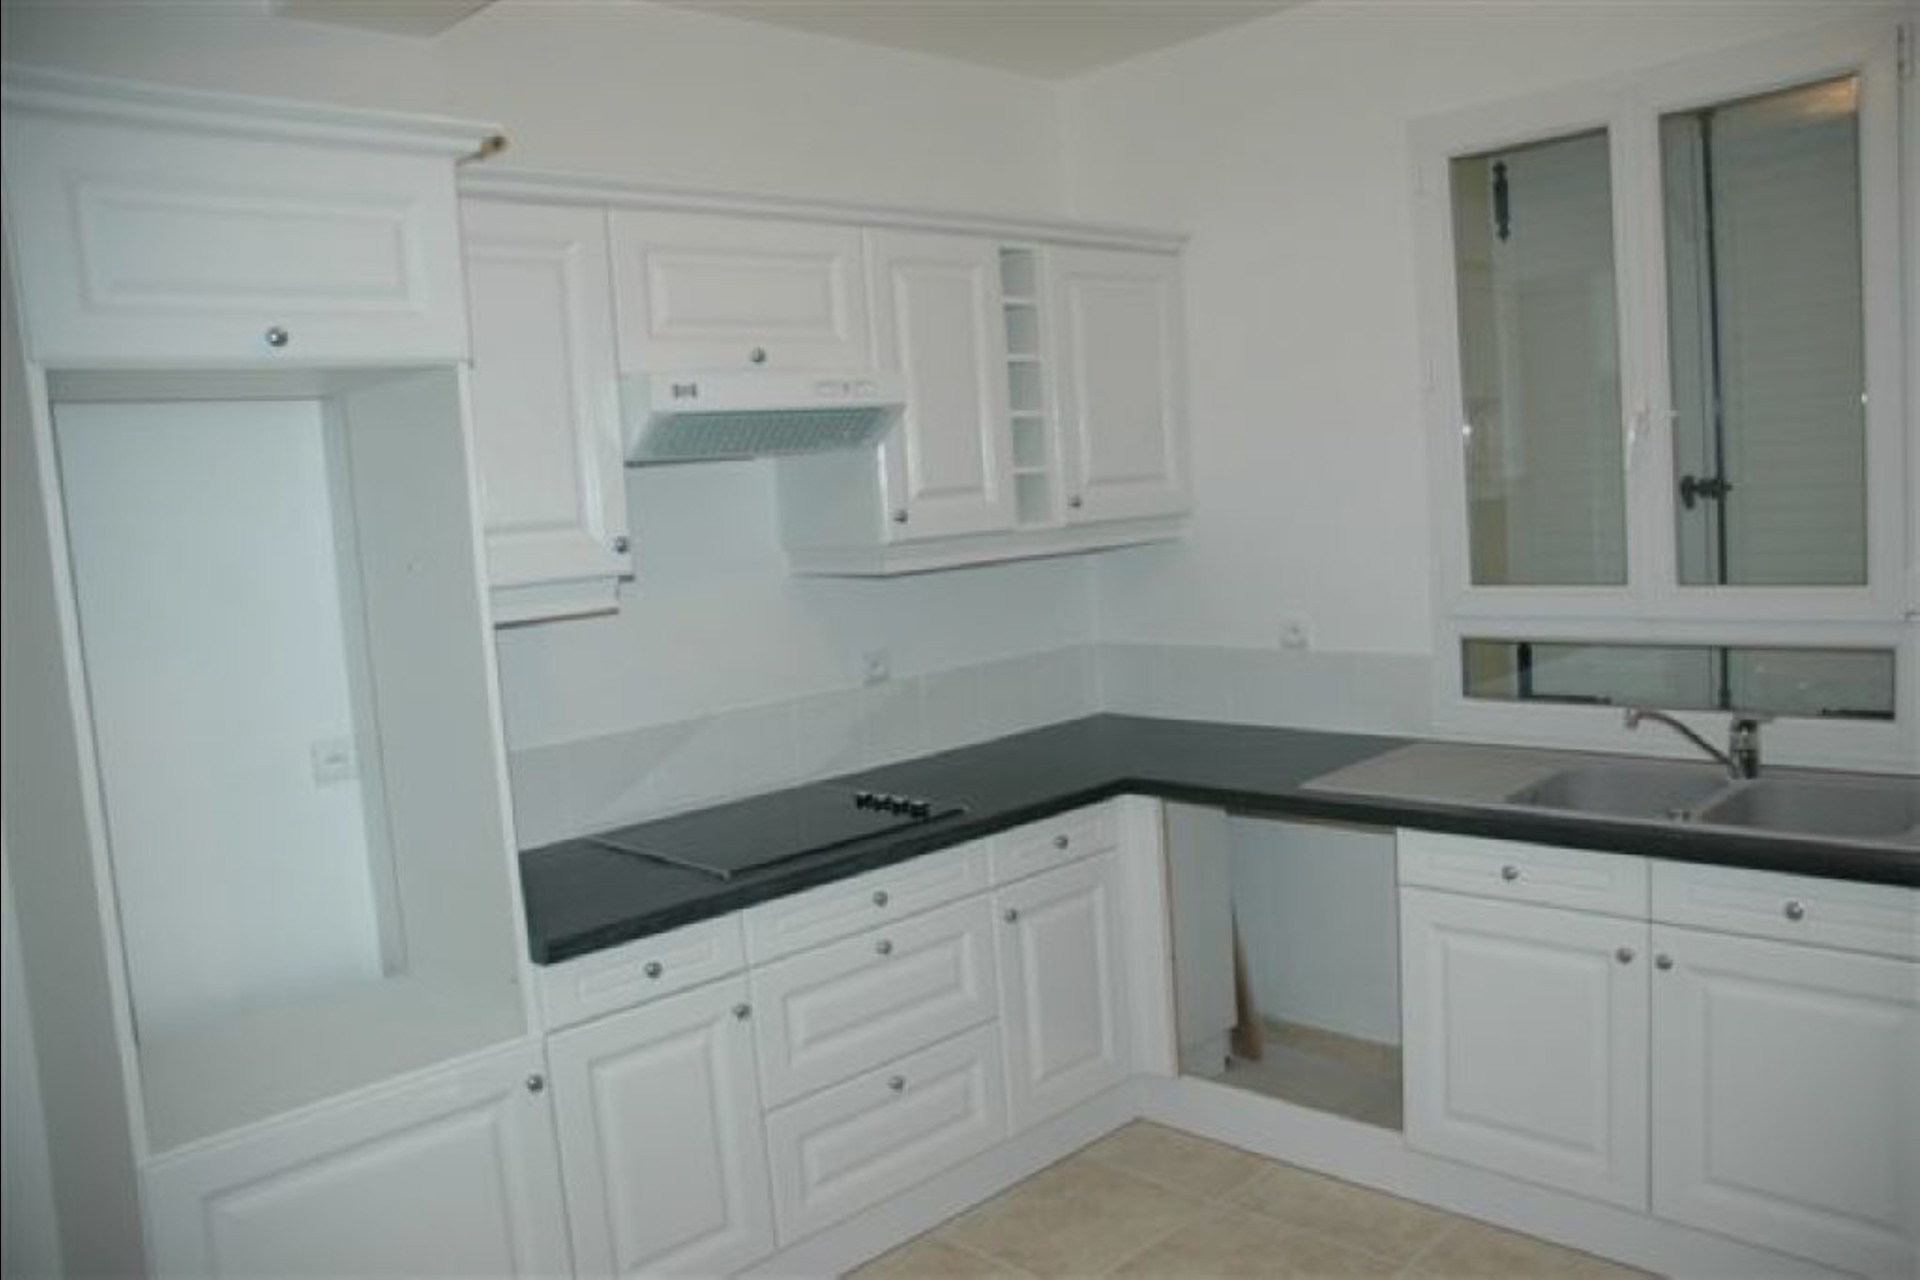 image 9 - House For rent - 7 rooms